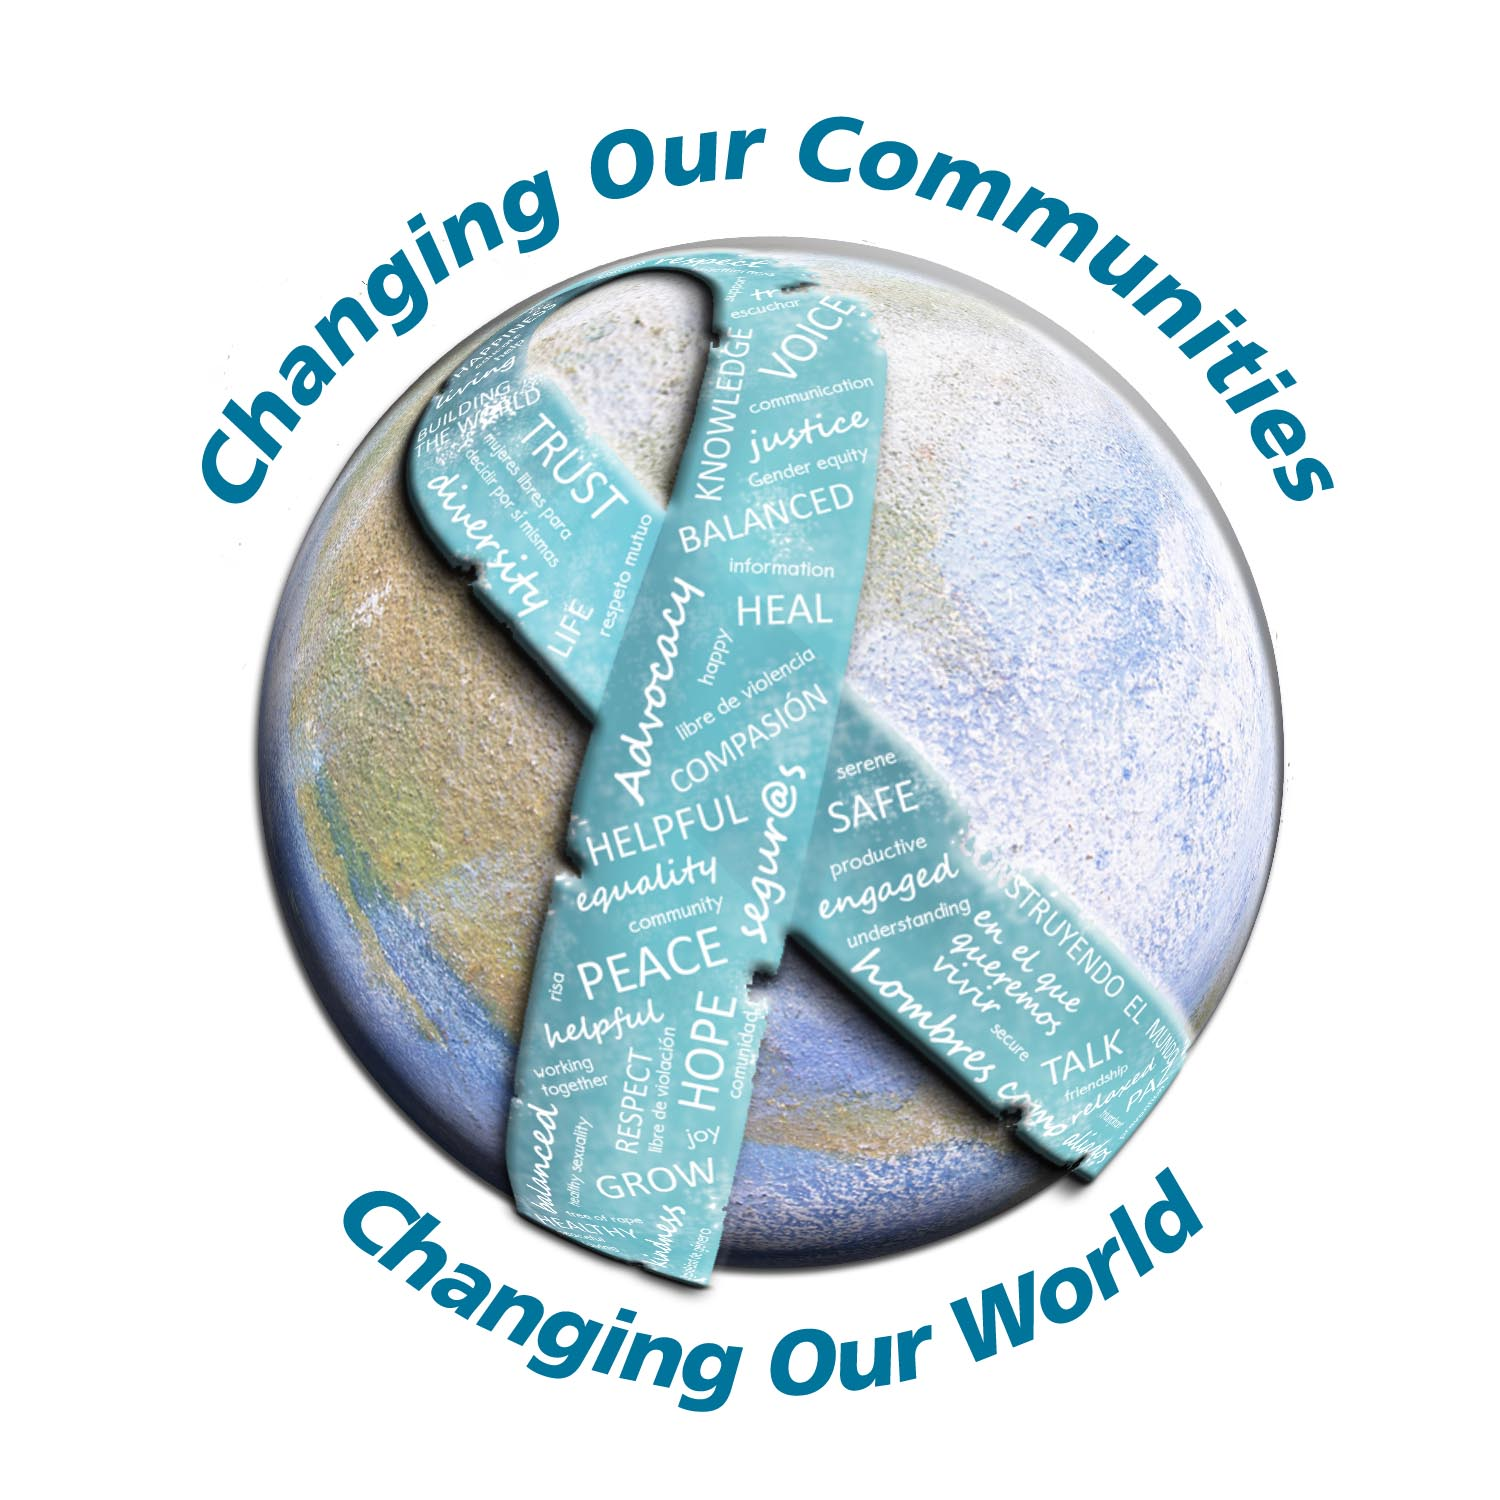 2011-NSAC-Logo-changing-our-communities-changing-our-world